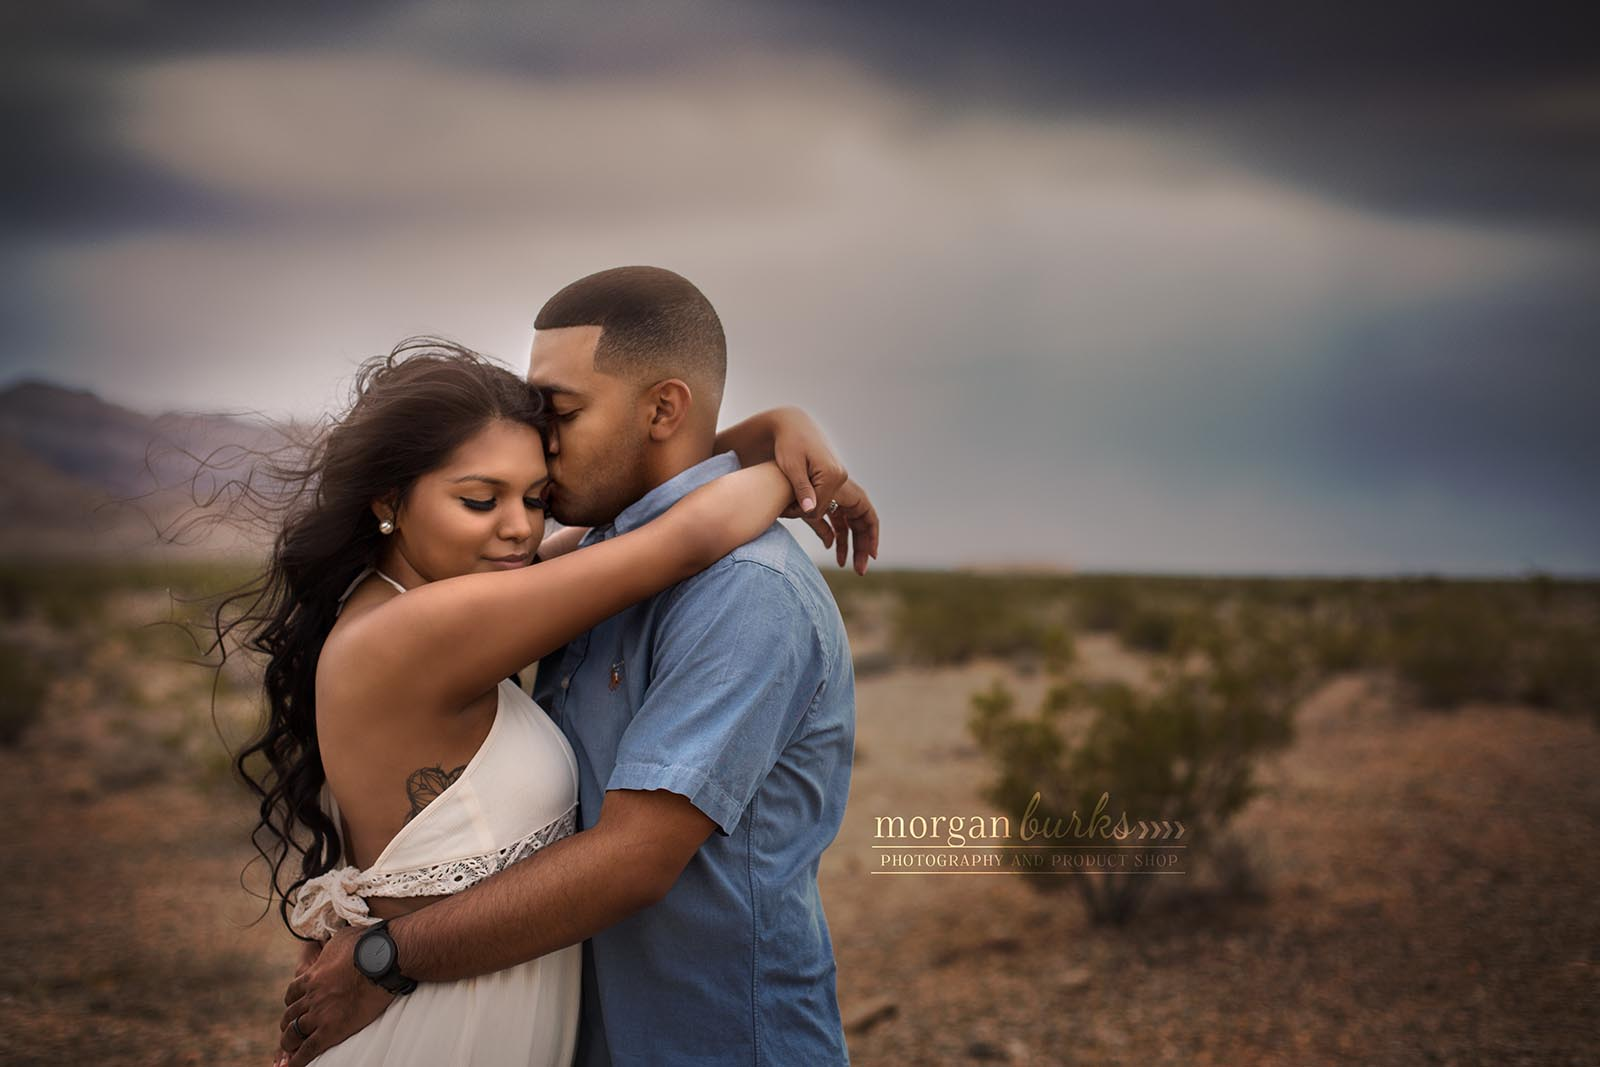 Couples posing ideas - Morgan Burks Photography Manhattan KS